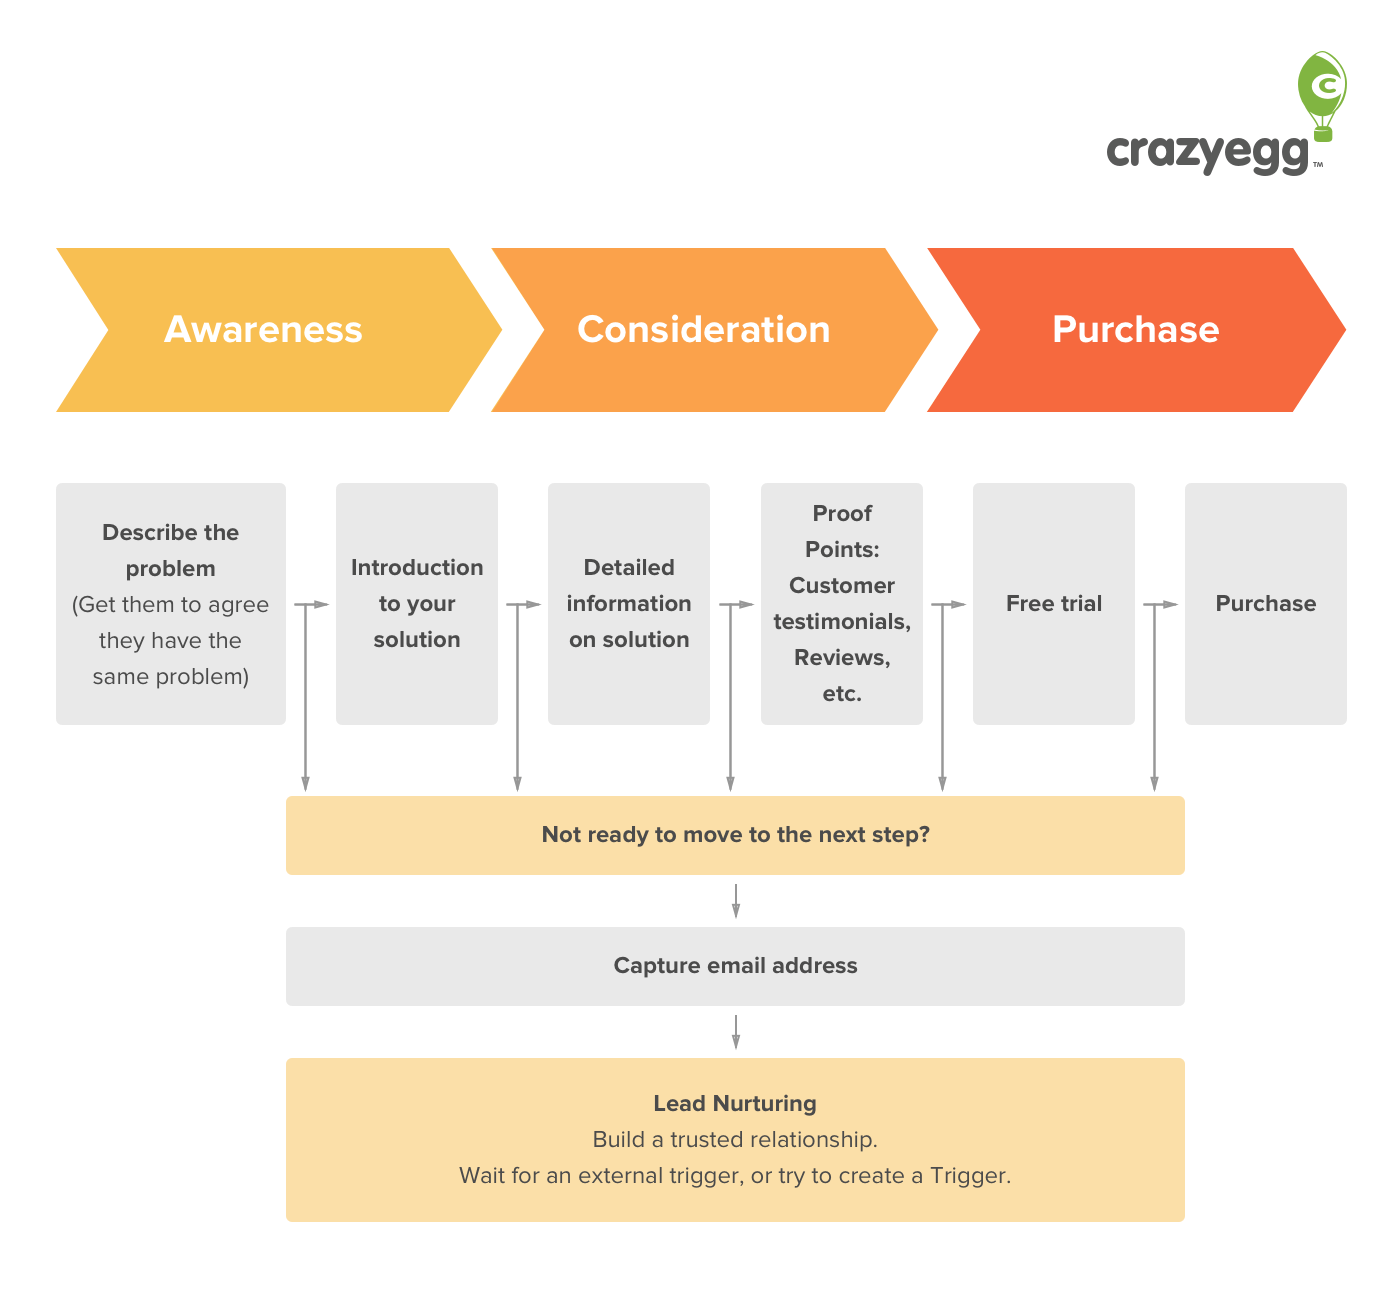 What are the Buyer's Journey Stages and How to Get Better